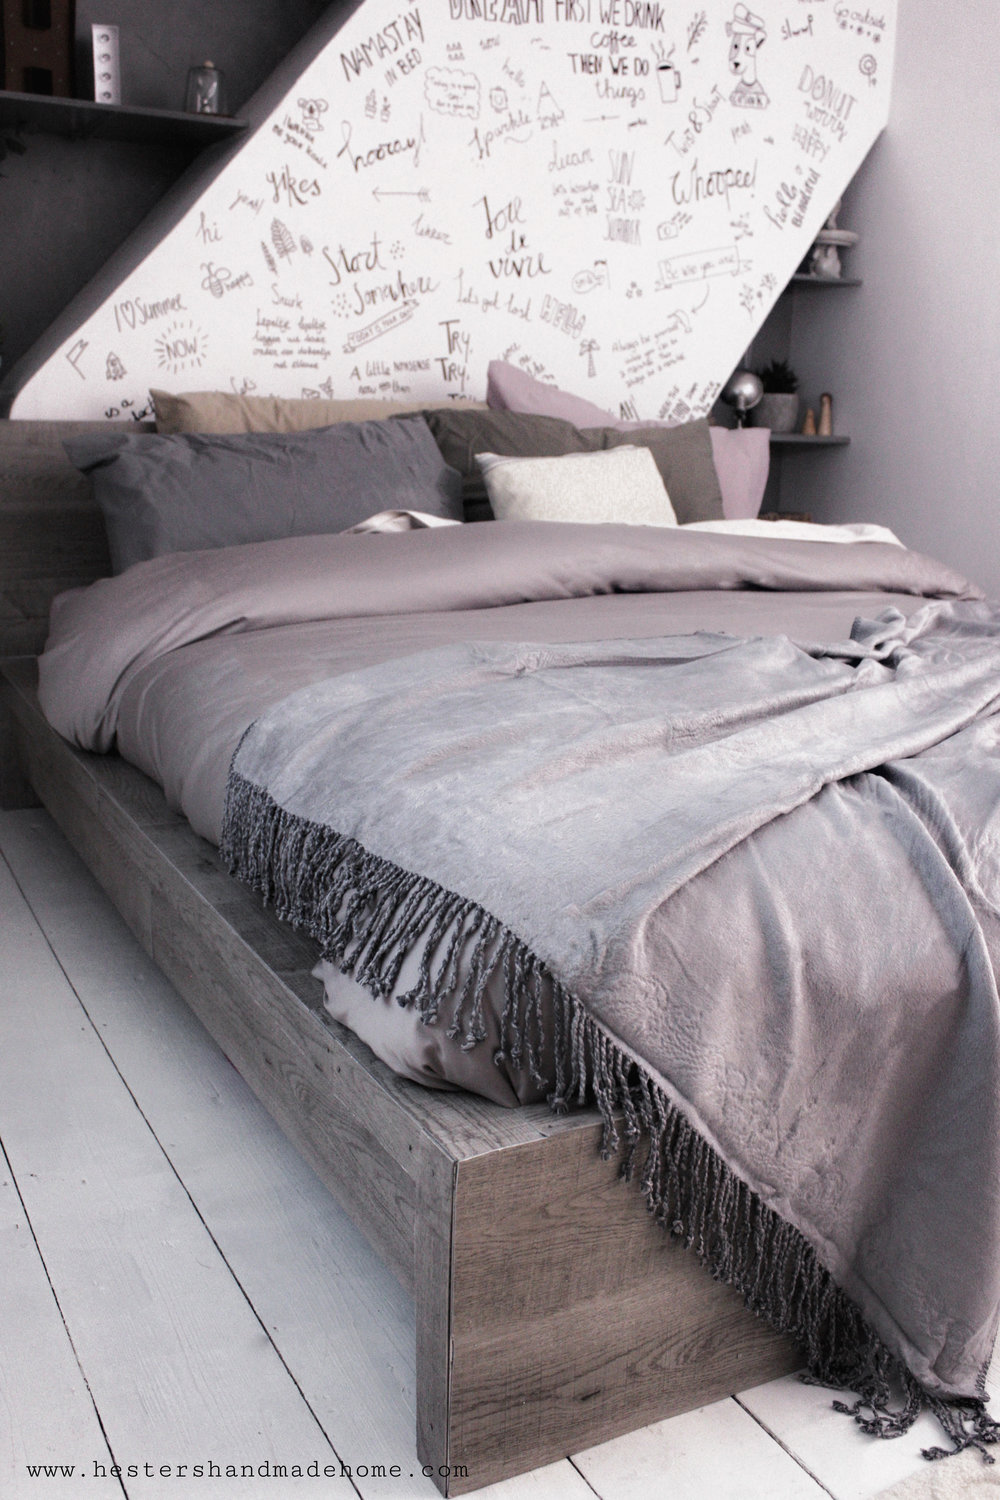 hygge your bed, tutorial by hesters handmade home